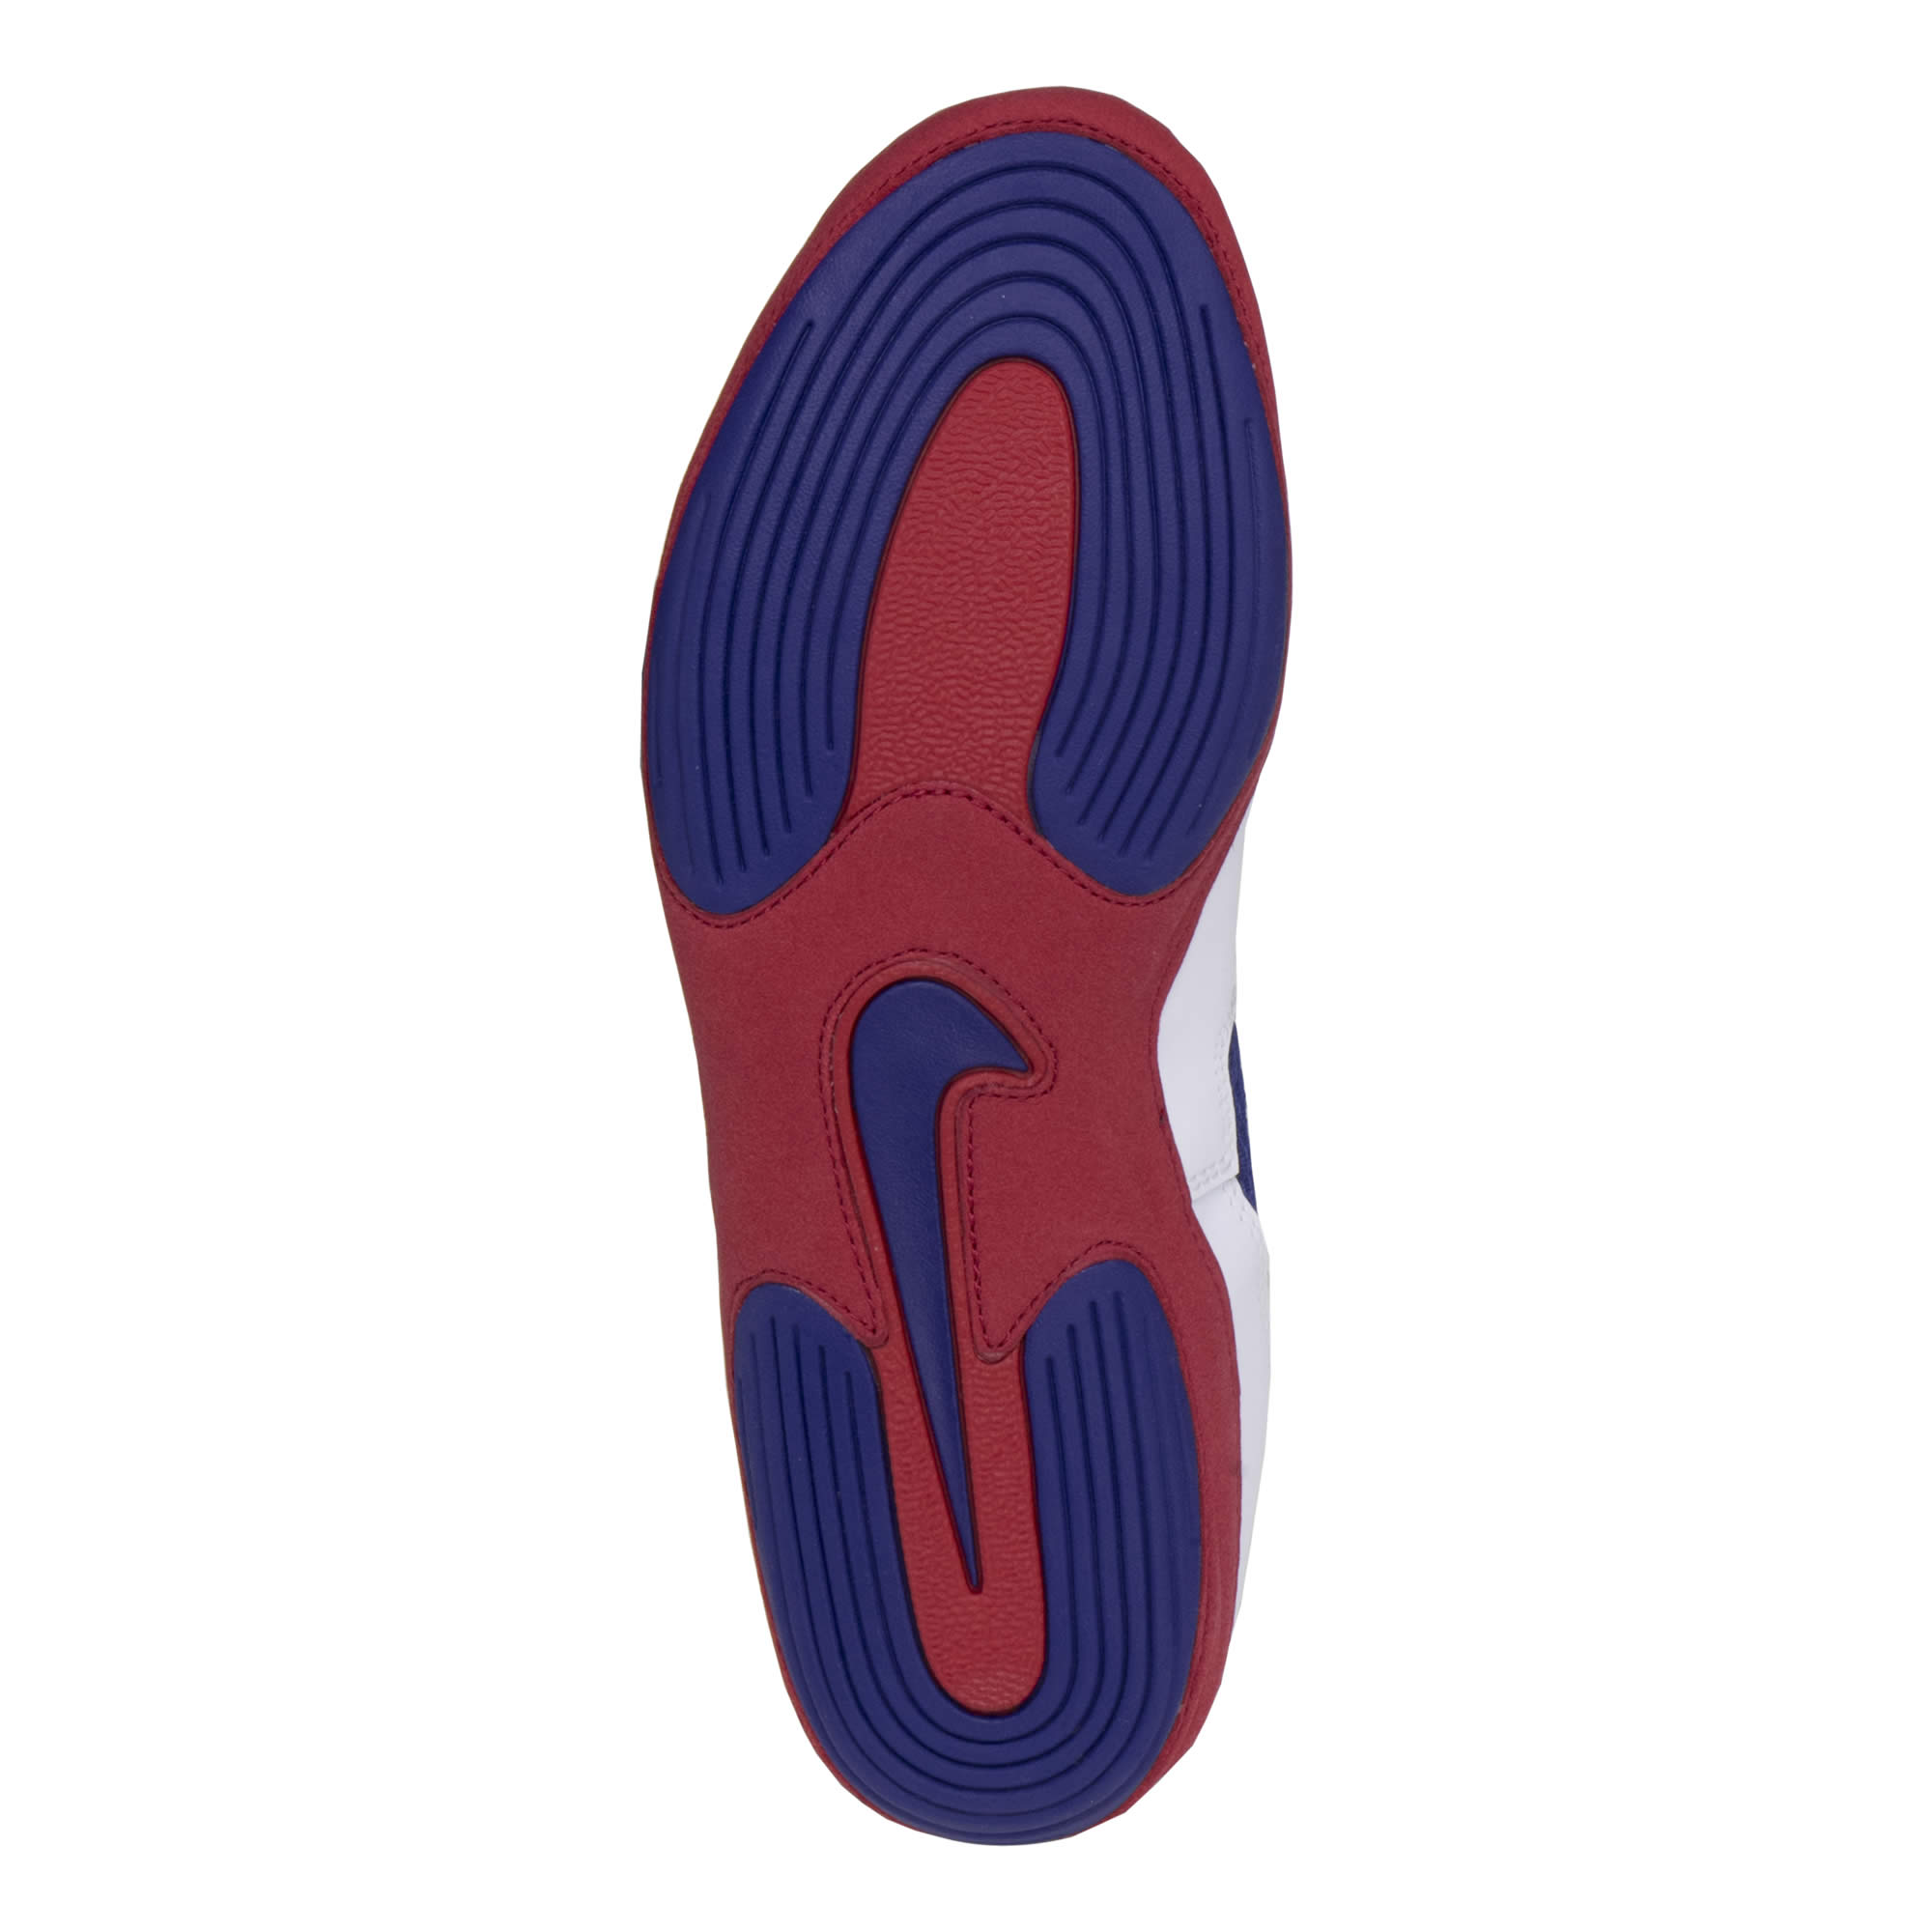 9a85bea51a3280 ... Inflict 3 Royal Blue Red White sole